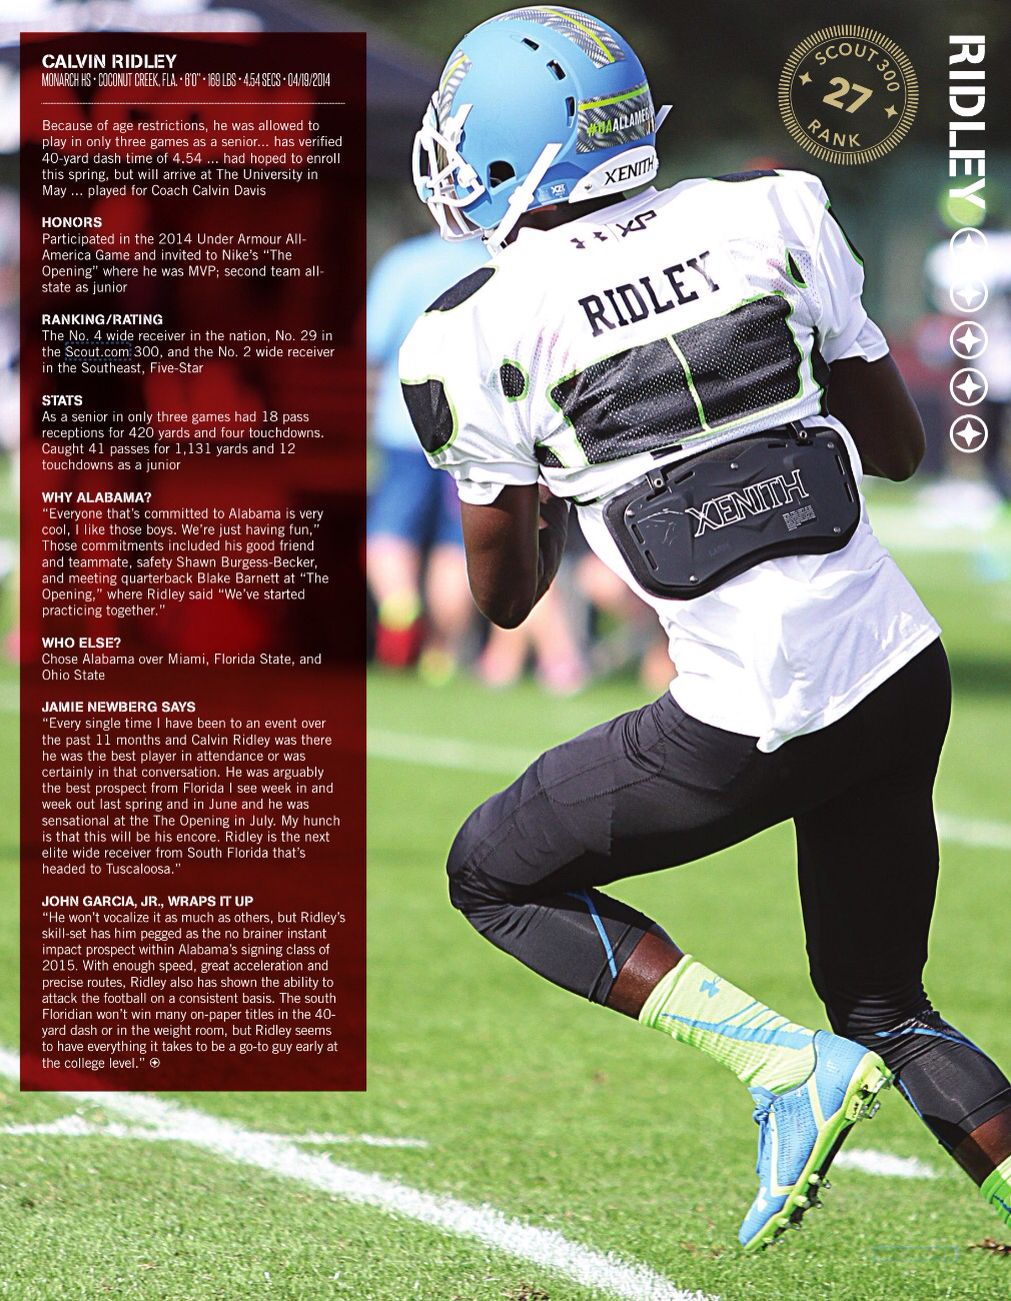 Calvin Ridley Wr Highly Touted 5 Star Prospect 2015 Alabama Recruit From The 2015 Bama Mag Recruiting Y Roll Tide Alabama Crimson Tide Alabama Football